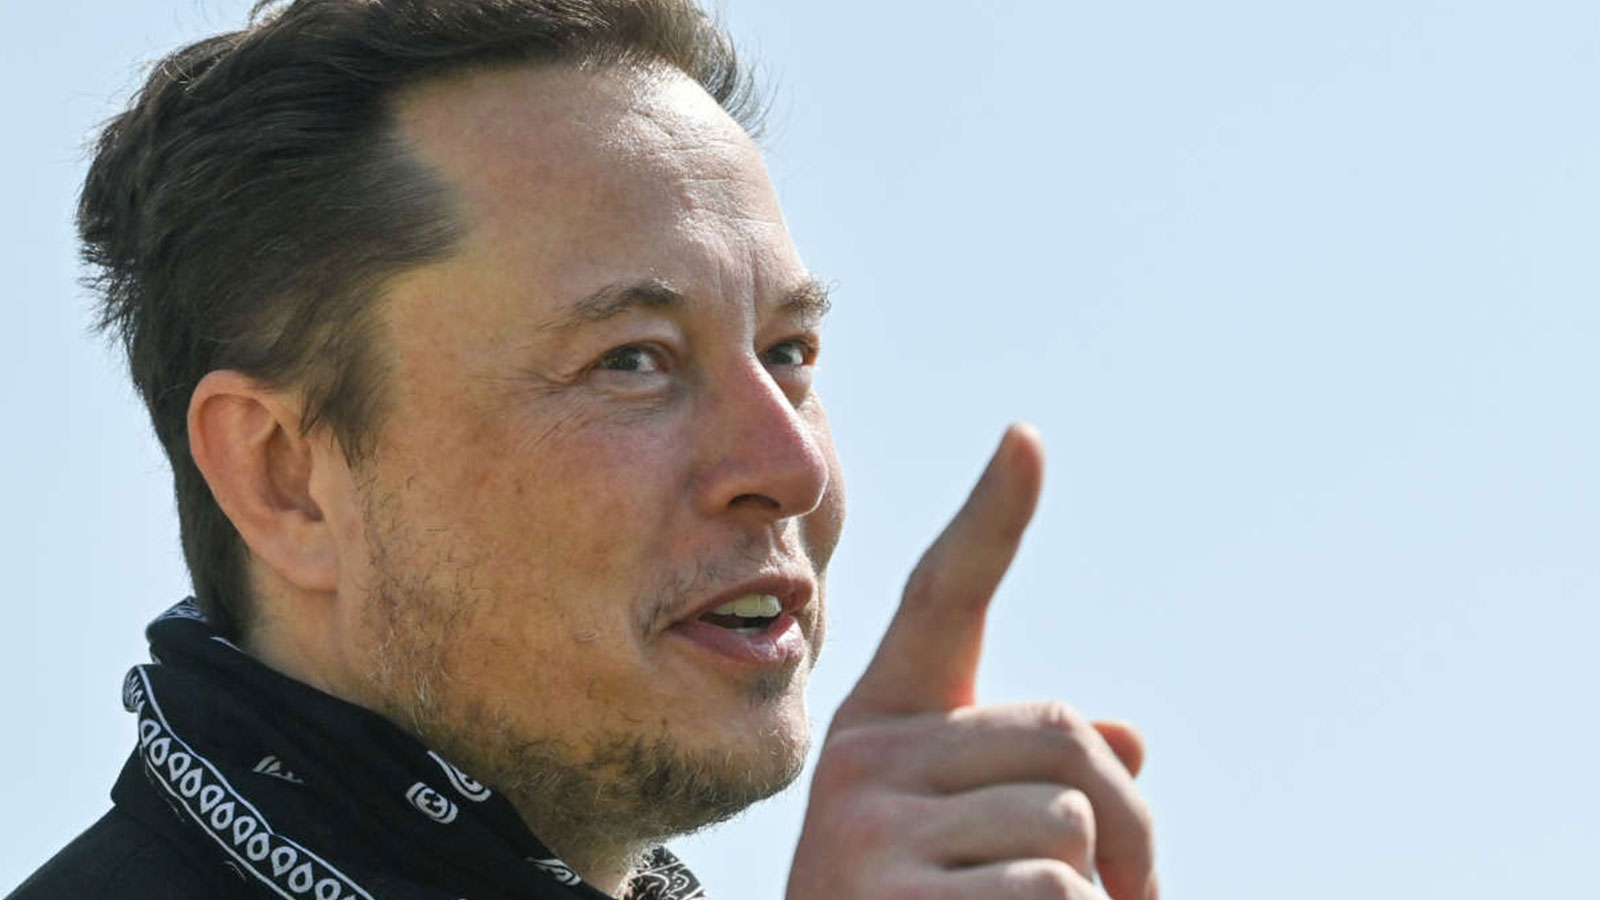 Tesla CEO Elon Musk talks during a tour of the plant of the future foundry of the Tesla Gigafactory on August 13, 2021, in Grünheide near Berlin, Germany.